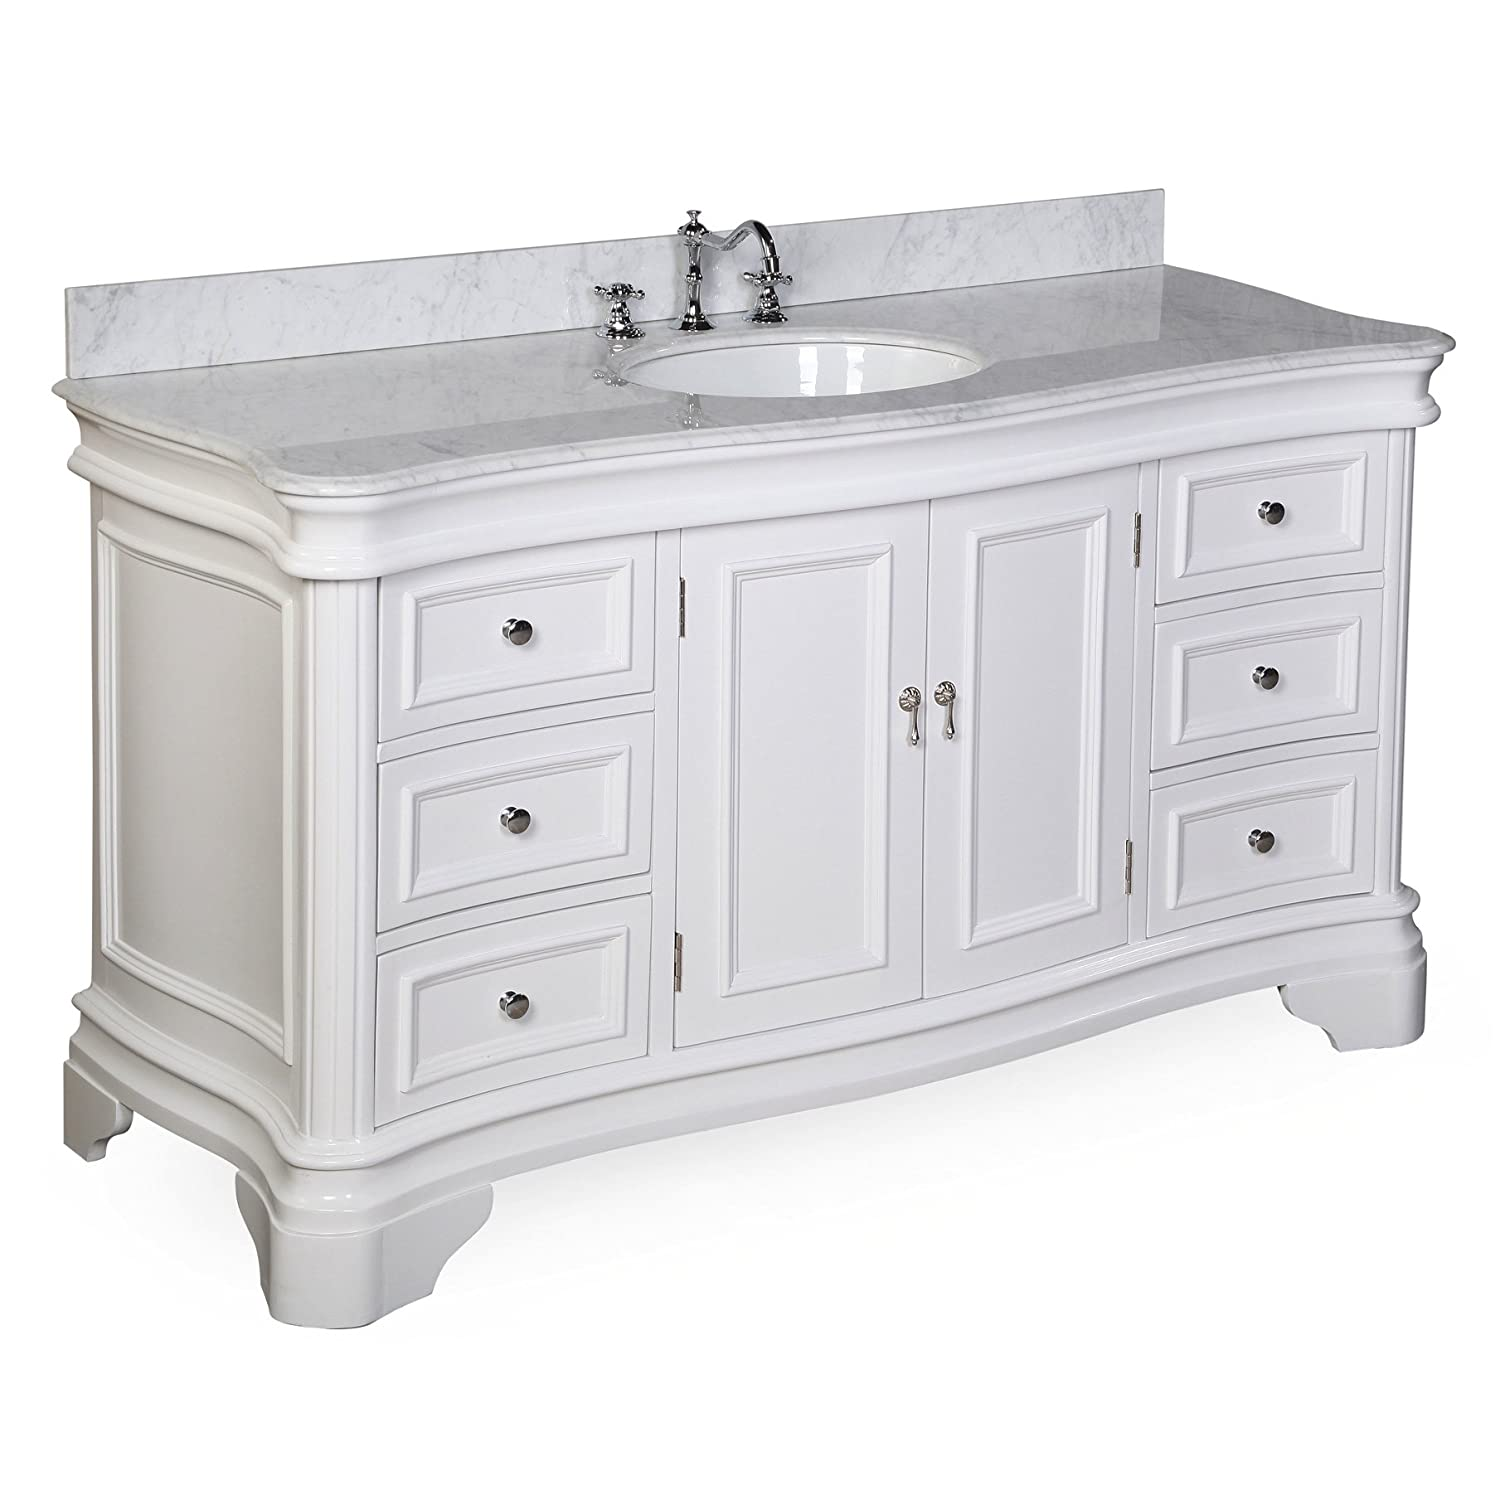 Kitchen Bath Collection KBC A601WTCARR Katherine Single Sink Bathroom Vanity  With Marble Countertop, Cabinet With Soft Close Function And Undermount  Ceramic ...